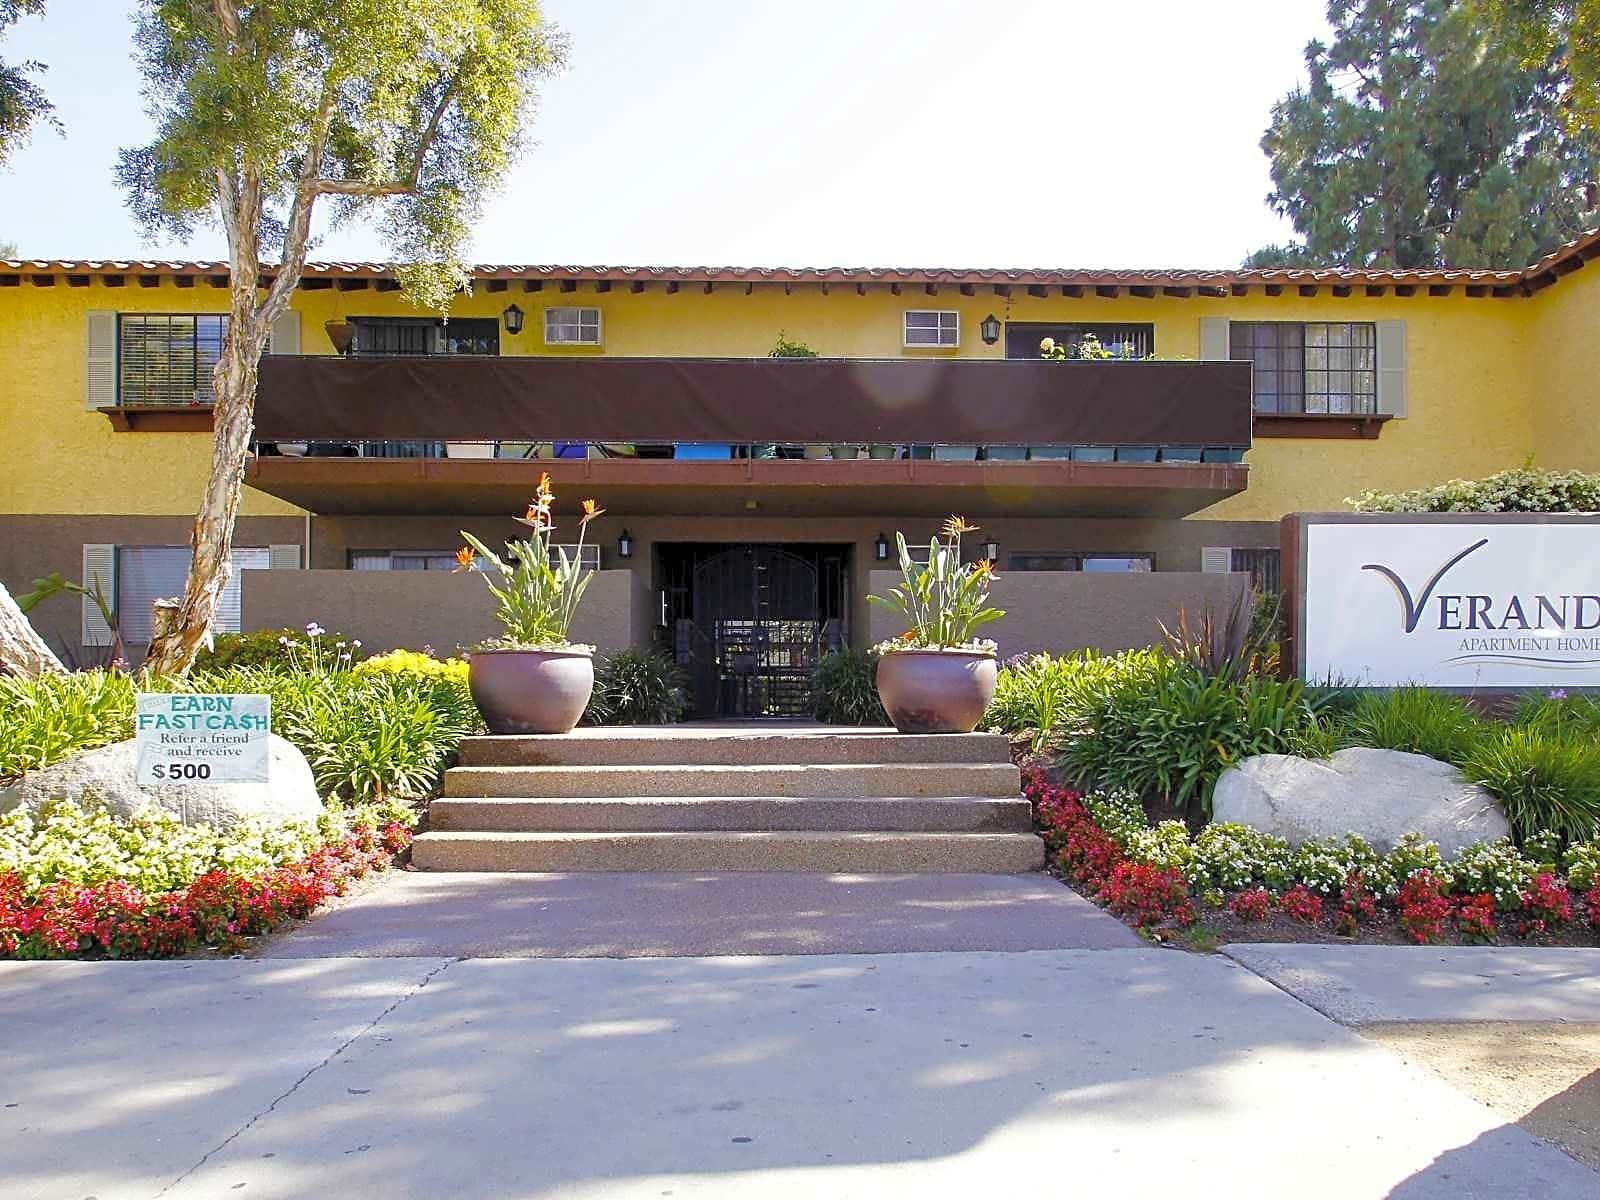 Veranda Apartment Homes for rent in Fullerton